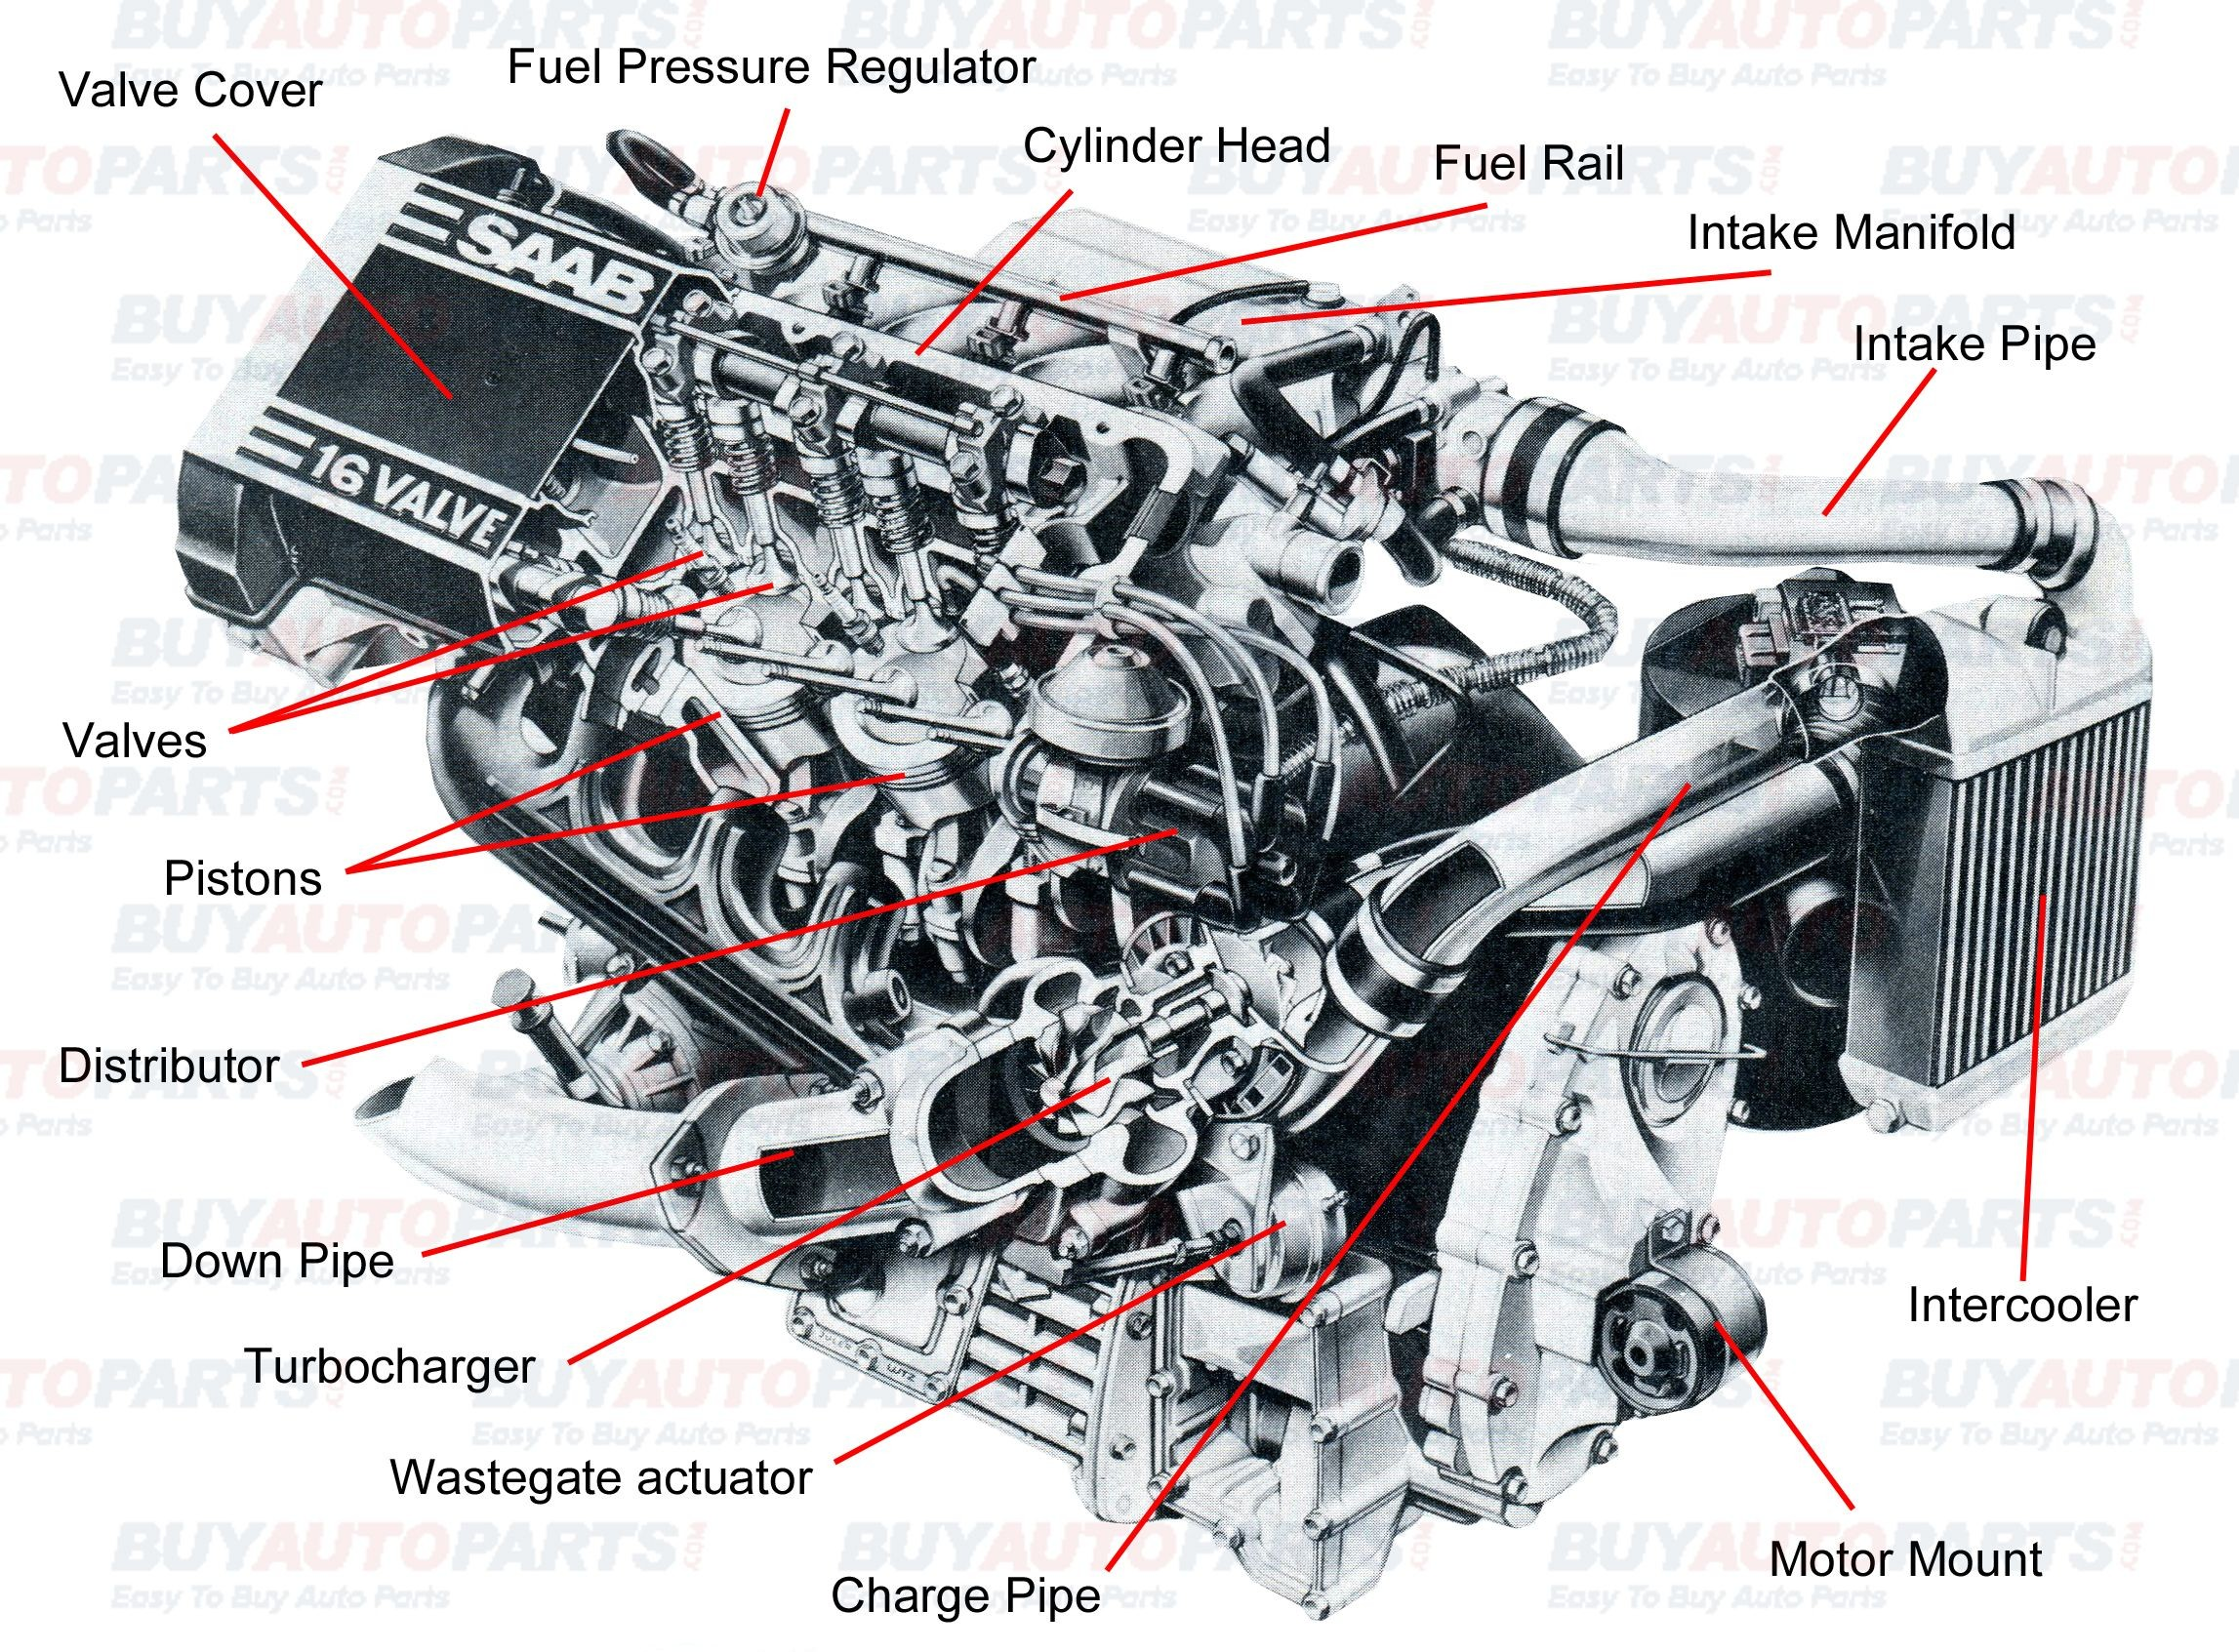 Auto Parts Diagrams Free Pin by Jimmiejanet Testellamwfz On What Does An Engine with Turbo Of Auto Parts Diagrams Free